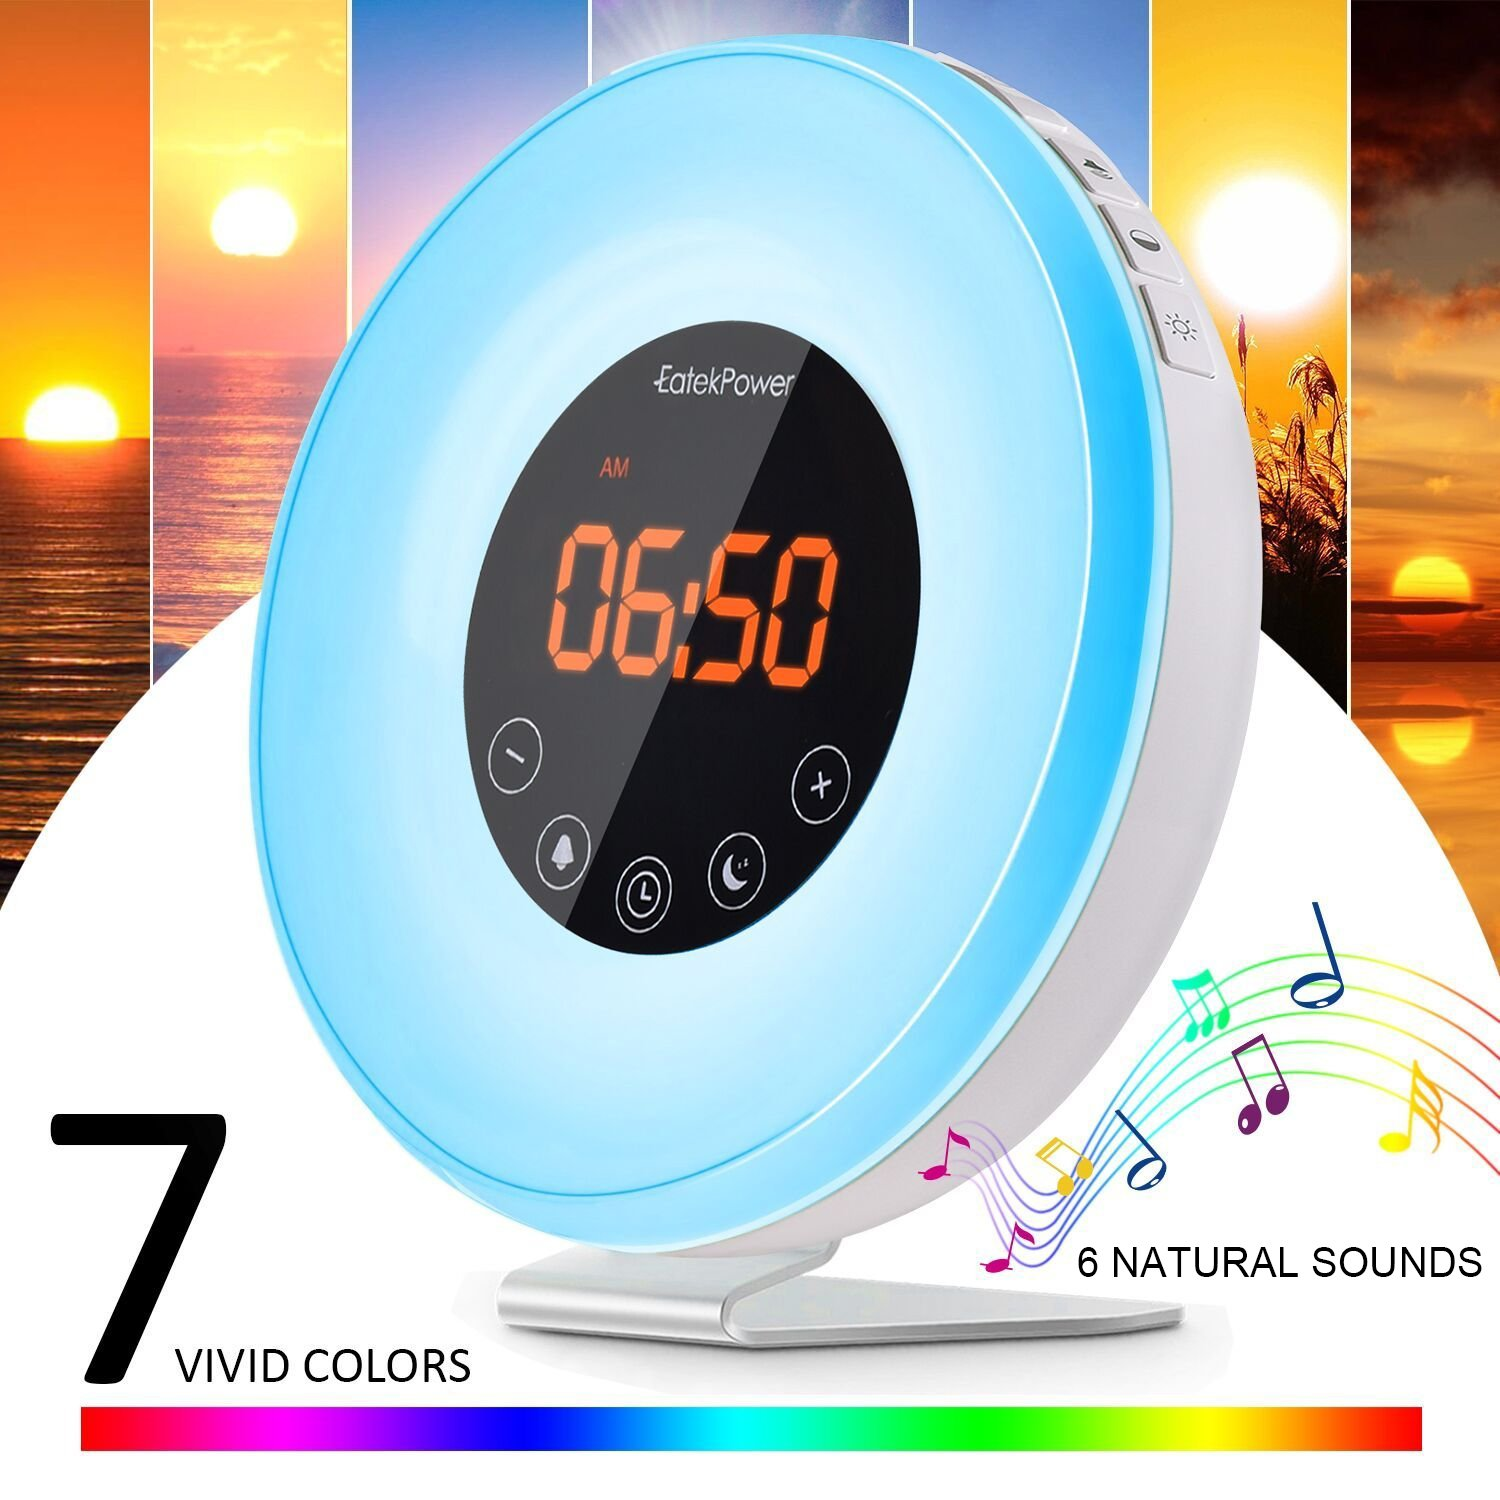 Wake Up Light EatekPower Alarm Clocks with Sunrise and Timer Sunset Simulation FM Radio Alarm clock 7 Colours Snooze Function Adjustable Brightness and Eye Protection 12/24H Mode Wake Up with 6 Natural Sounds or FM Radio Touch Control Panel product image